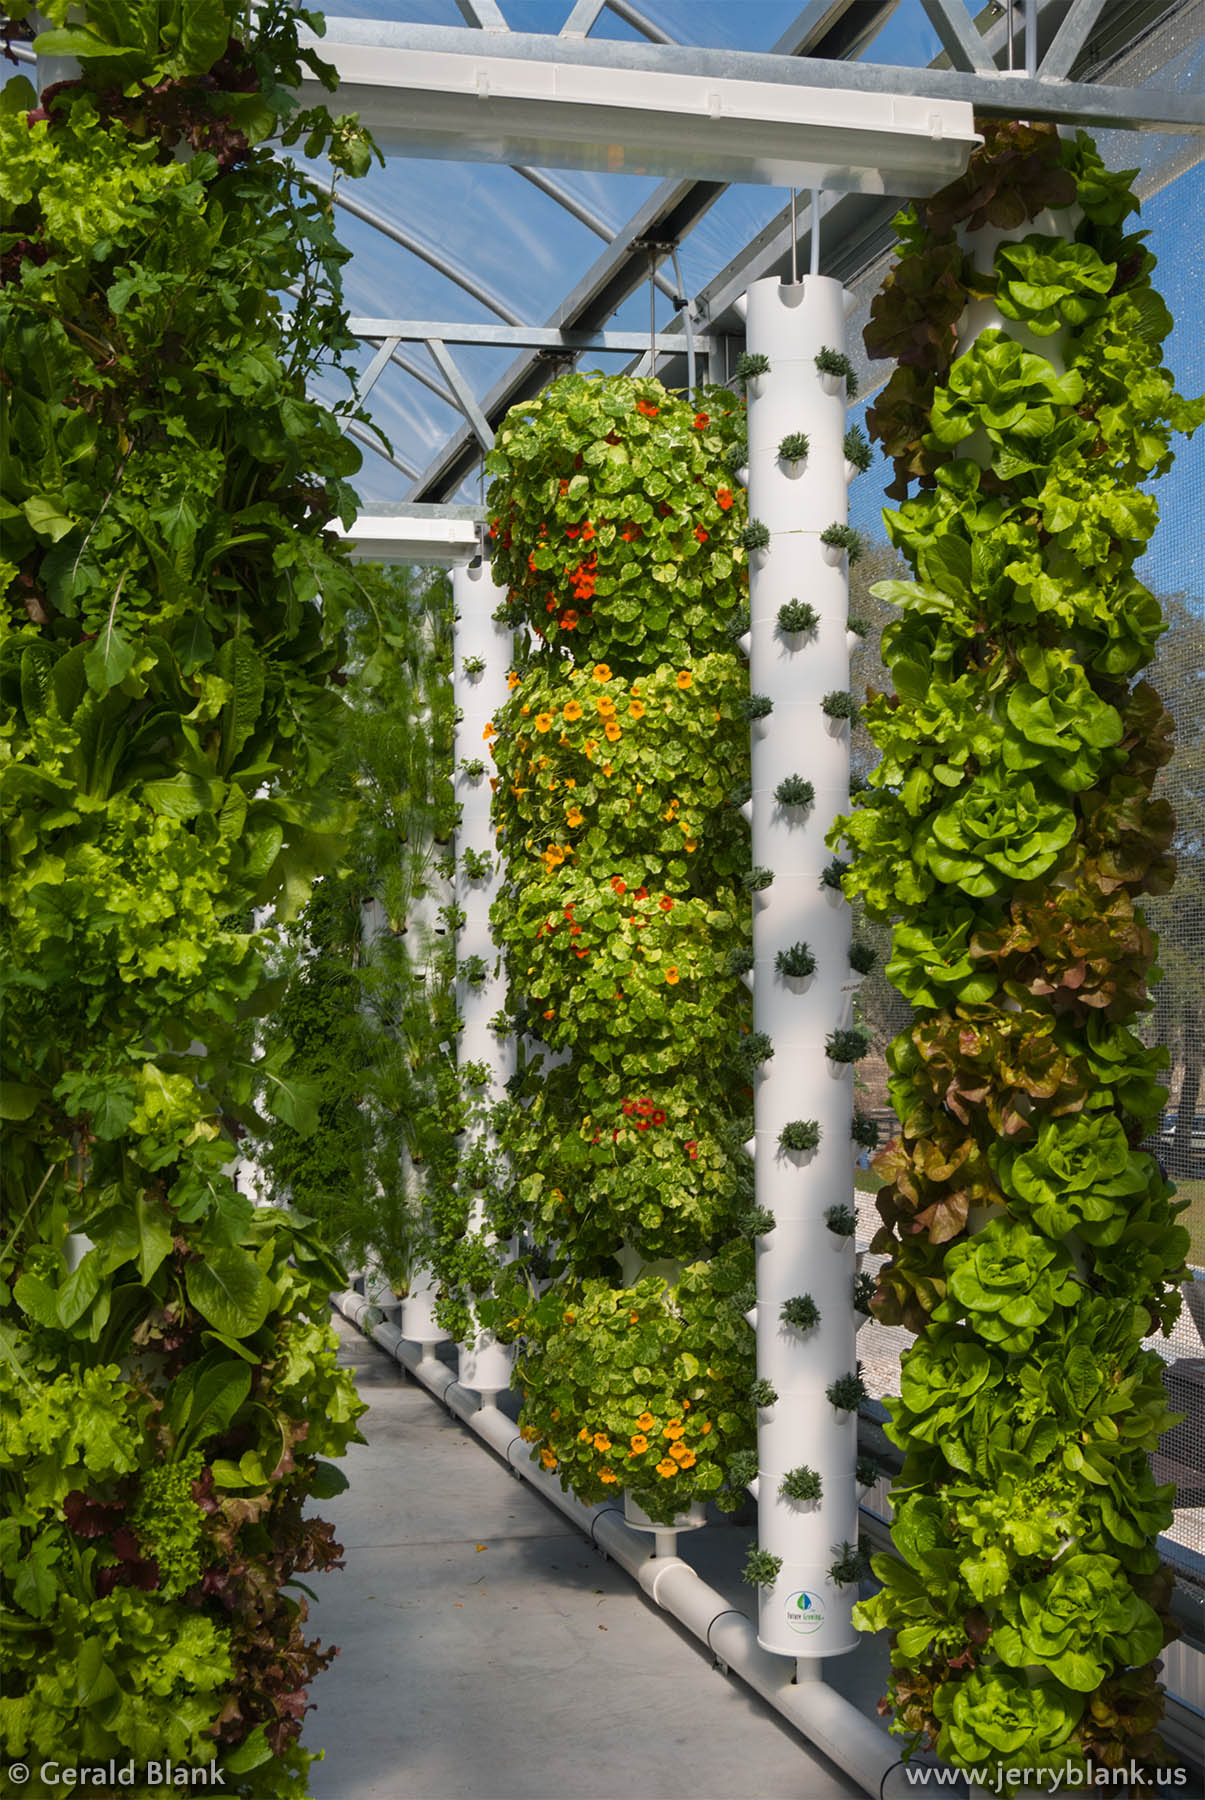 #14148 - 12-foot Tower Gardens at Living Towers Hydroponic Farm in Lake County, central Florida